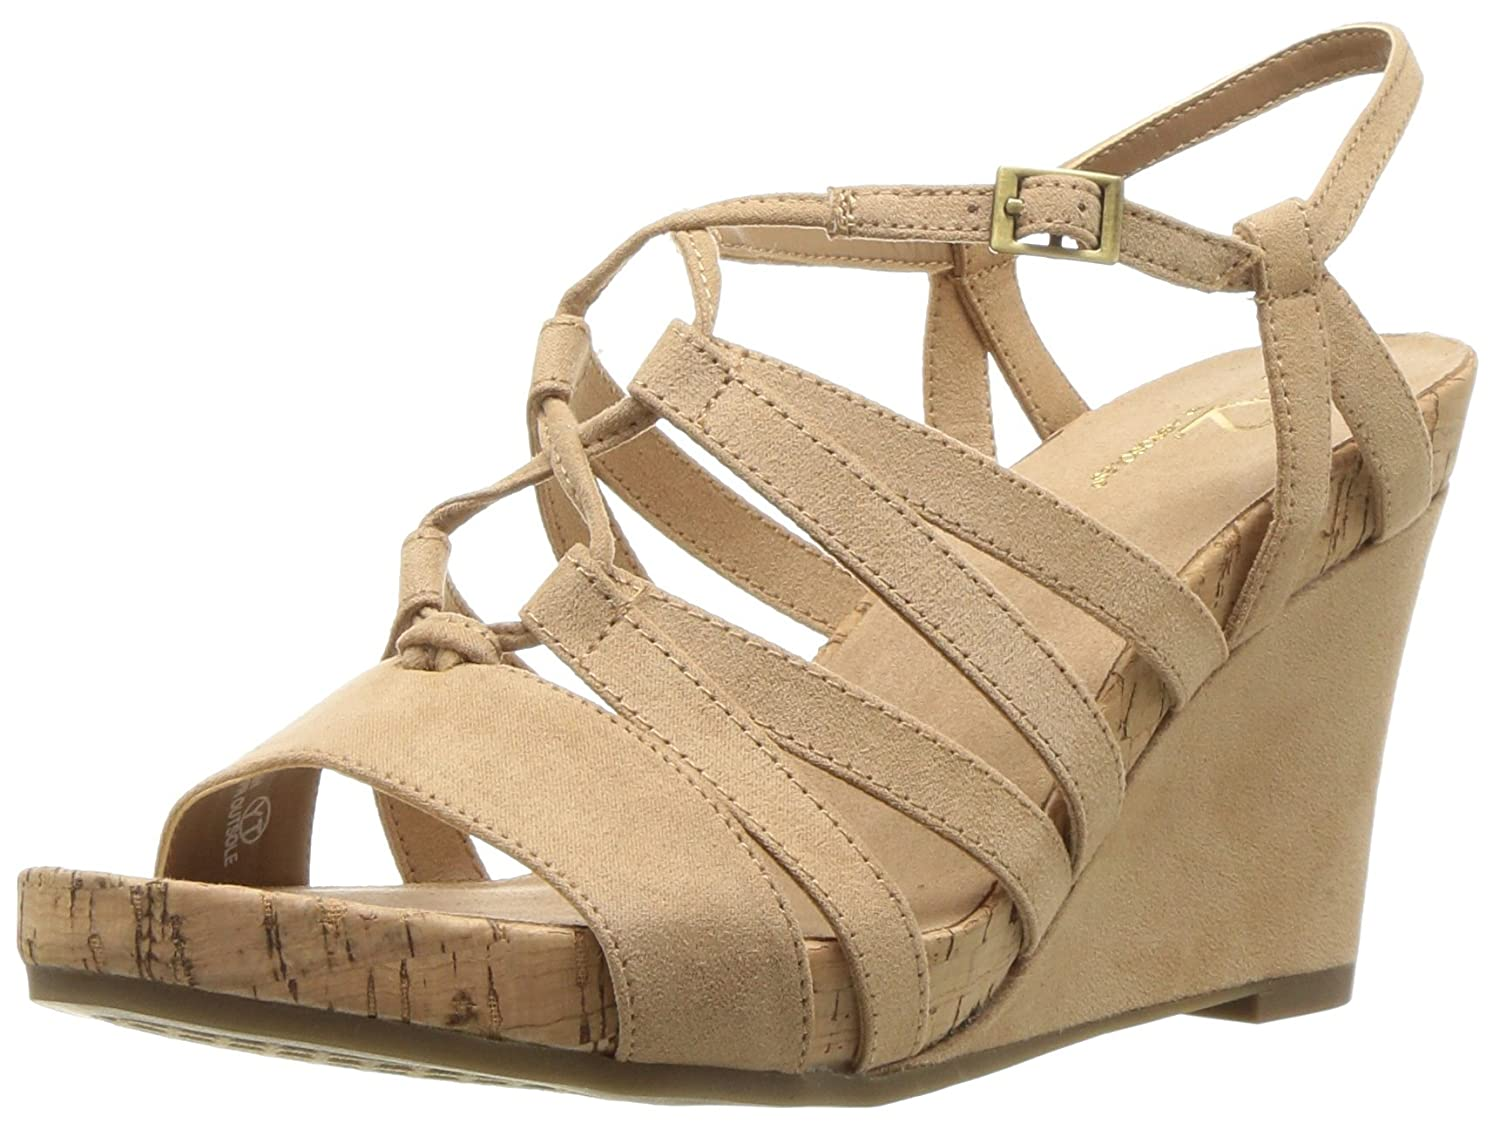 Aerosoles Women's Poppy Plush Wedge Sandal B078WDFWBX 5 B(M) US|Light Tan